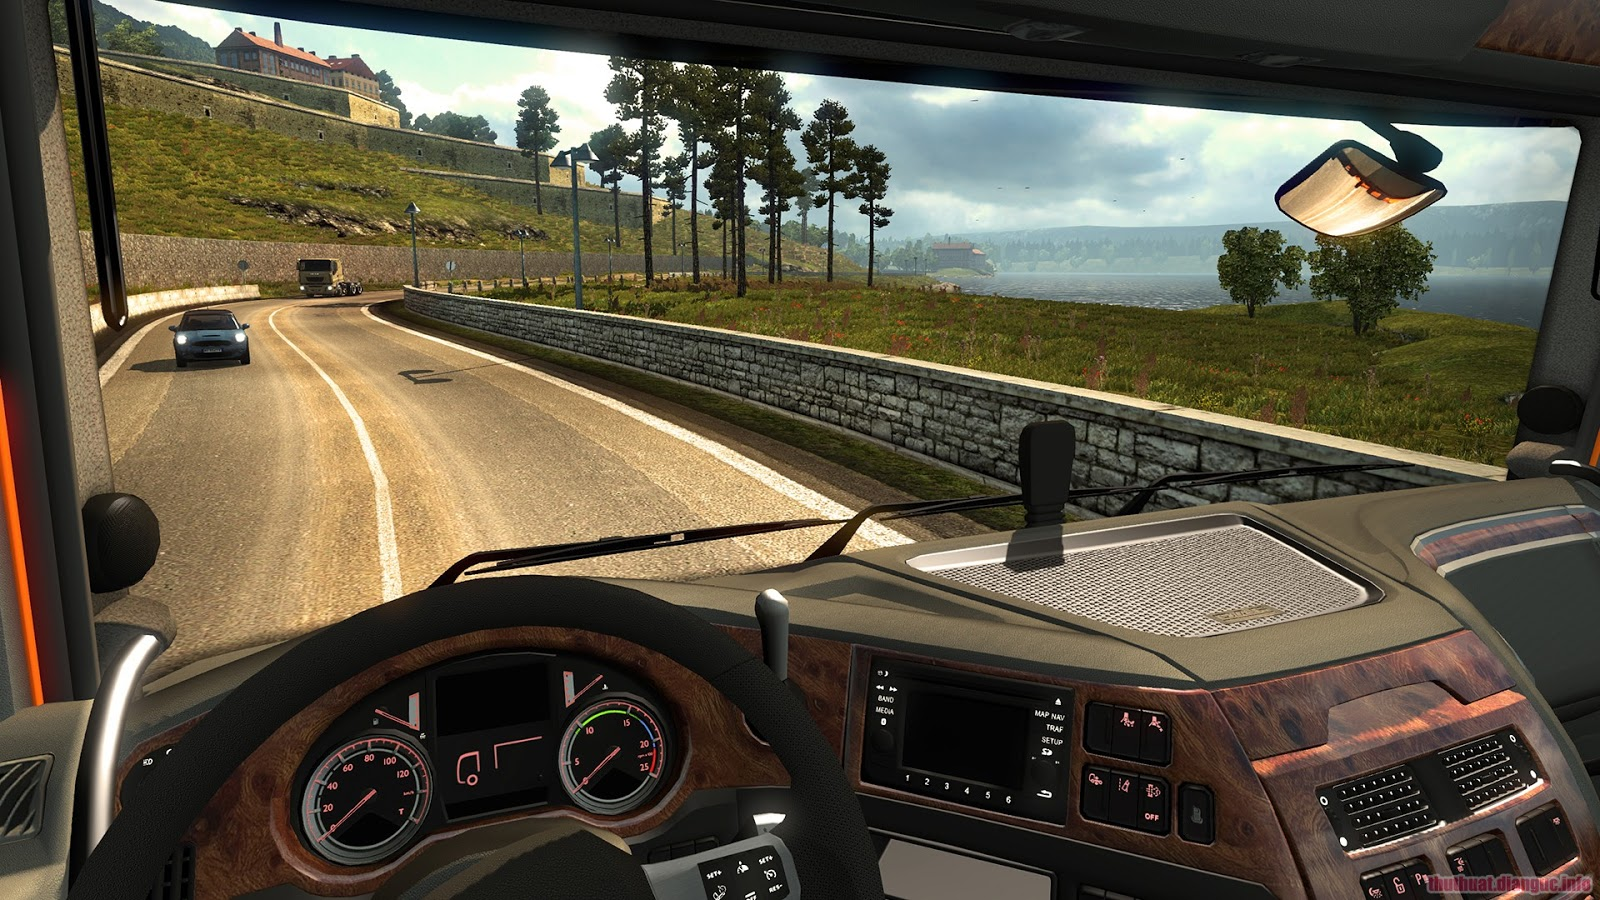 Tổng Hợp Link Download Game Euro Truck Simulator 2 Full Version, Euro Truck Simulator 2 tất cả các phiên bản, Tổng Hợp Link Download Game Euro Truck Simulator 2 Full Version, Download Game Euro Truck Simulator 2 tất cả các phiên bản, Euro Truck Simulator 2 Release Full Version